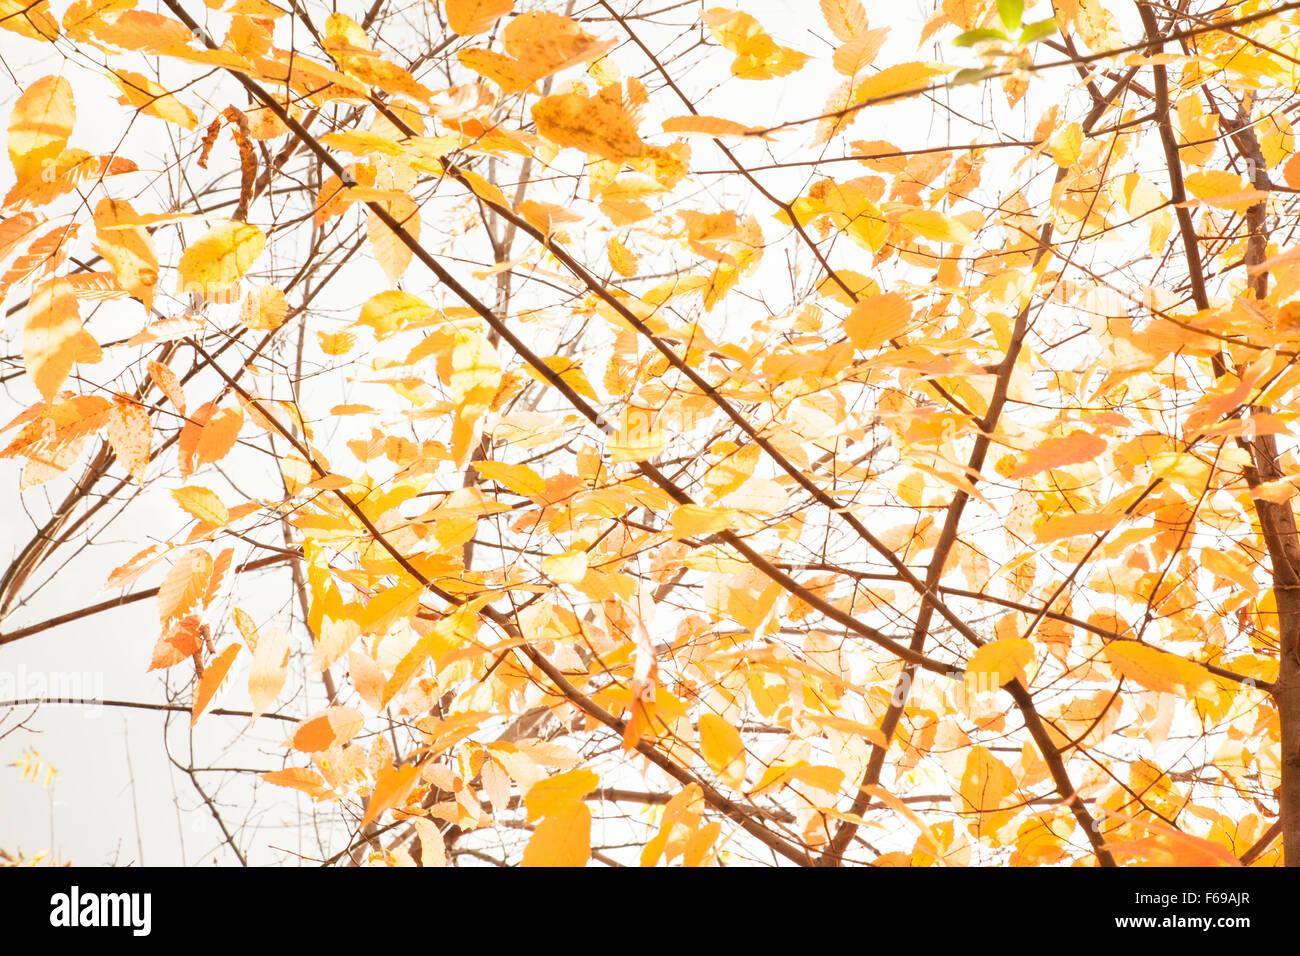 Yellow leaves cling to branches in the fall. - Stock Image